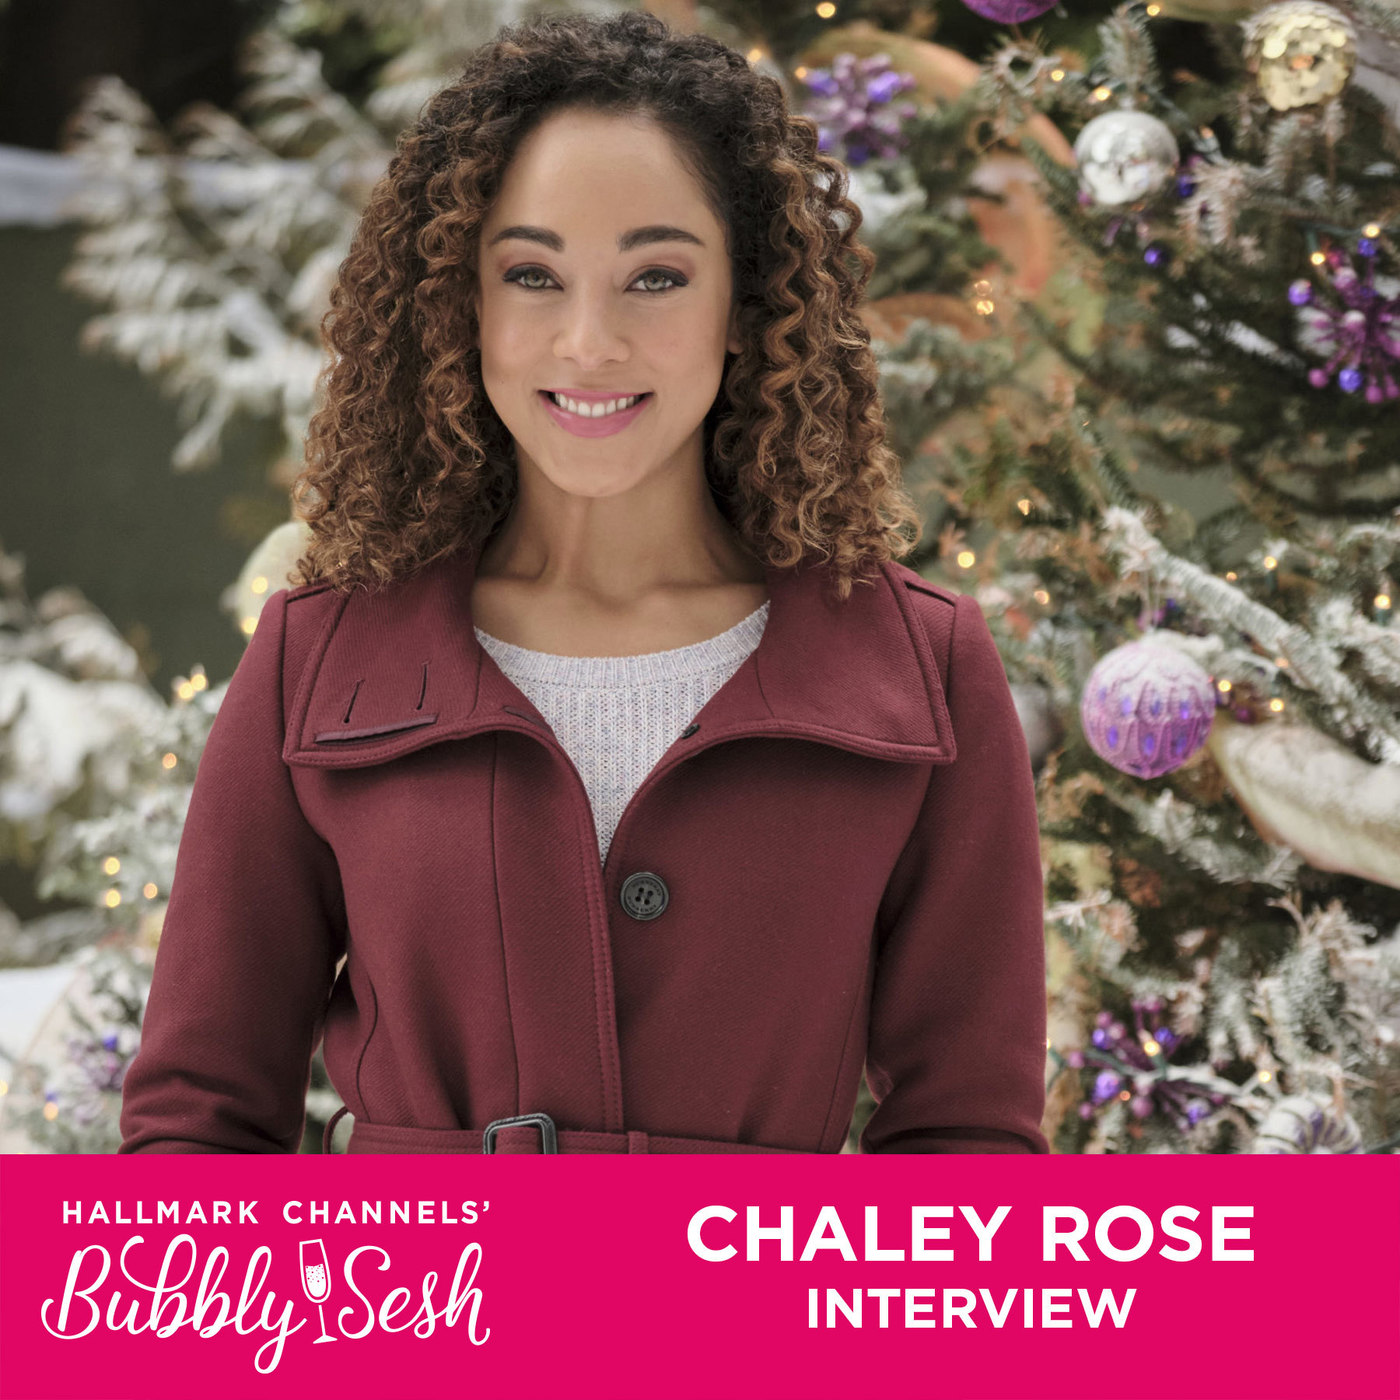 Chaley Rose Interview